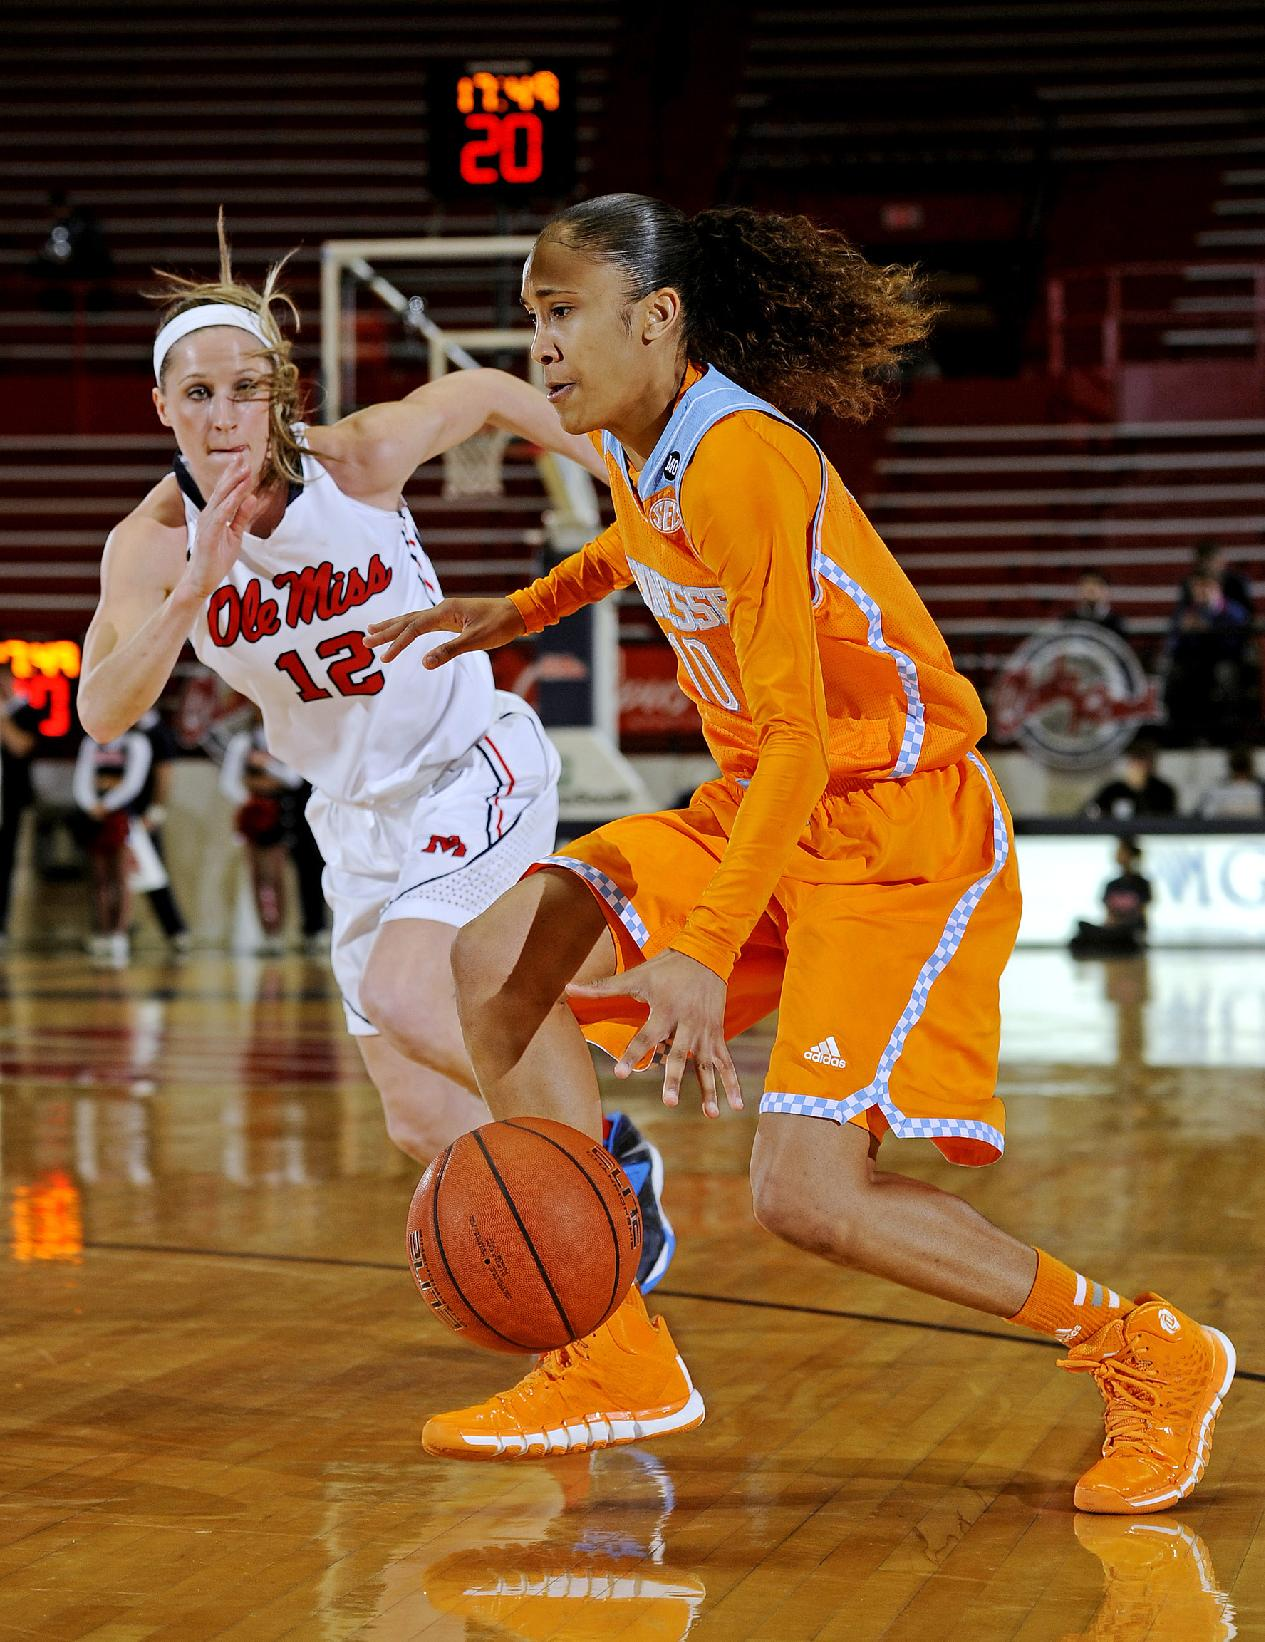 Tennessee guard Meighan Simmons (10) drives the ball past Mississippi guard Gracie Frizzell (12) during the first half of an NCAA college basketball game in Oxford, Miss., Thursday, Feb. 6, 2014